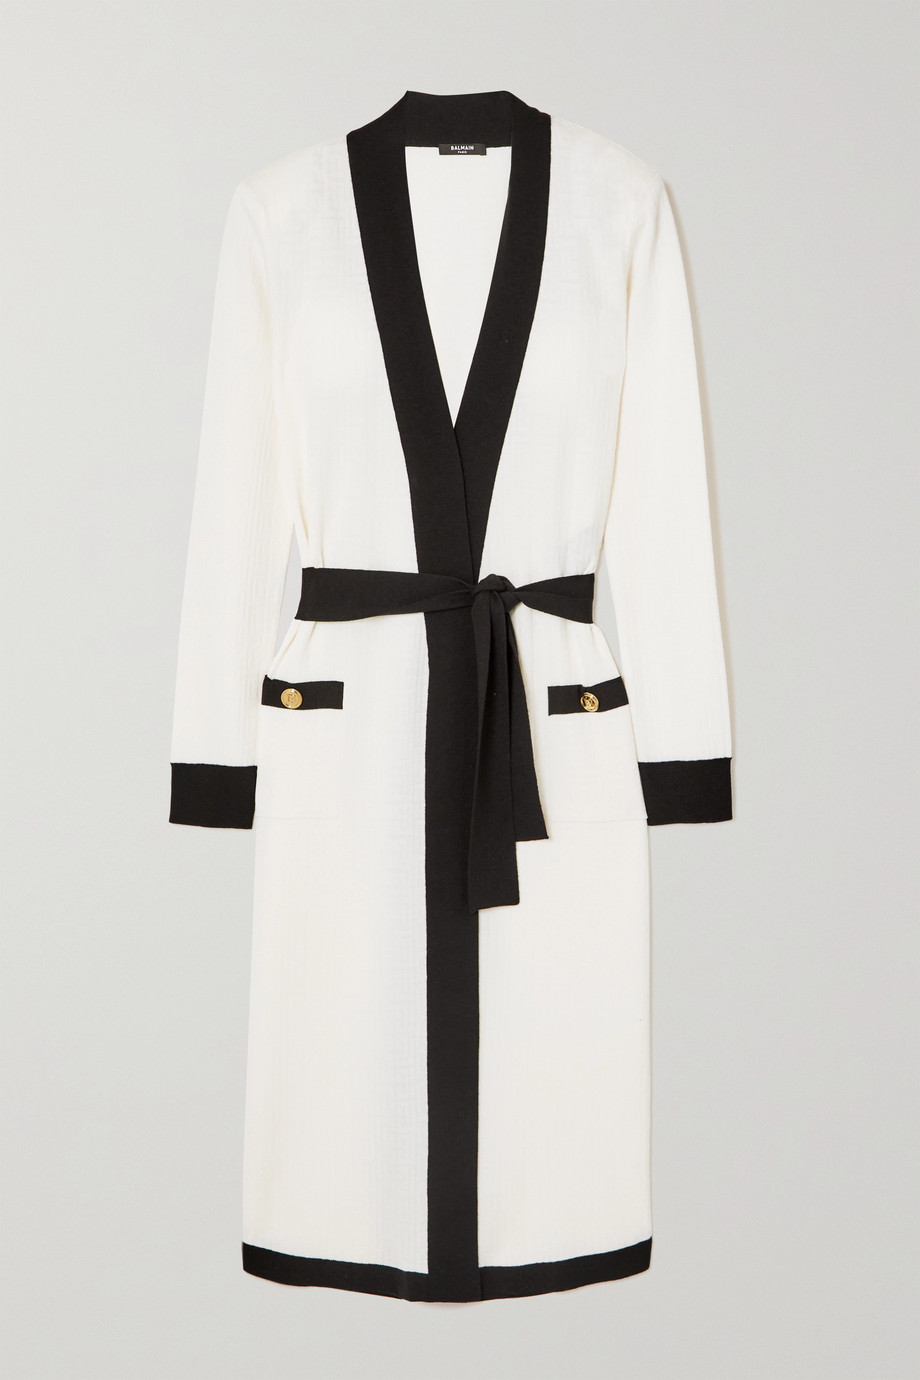 BALMAIN Belted two-tone jacquard-knit wool-blend cardigan